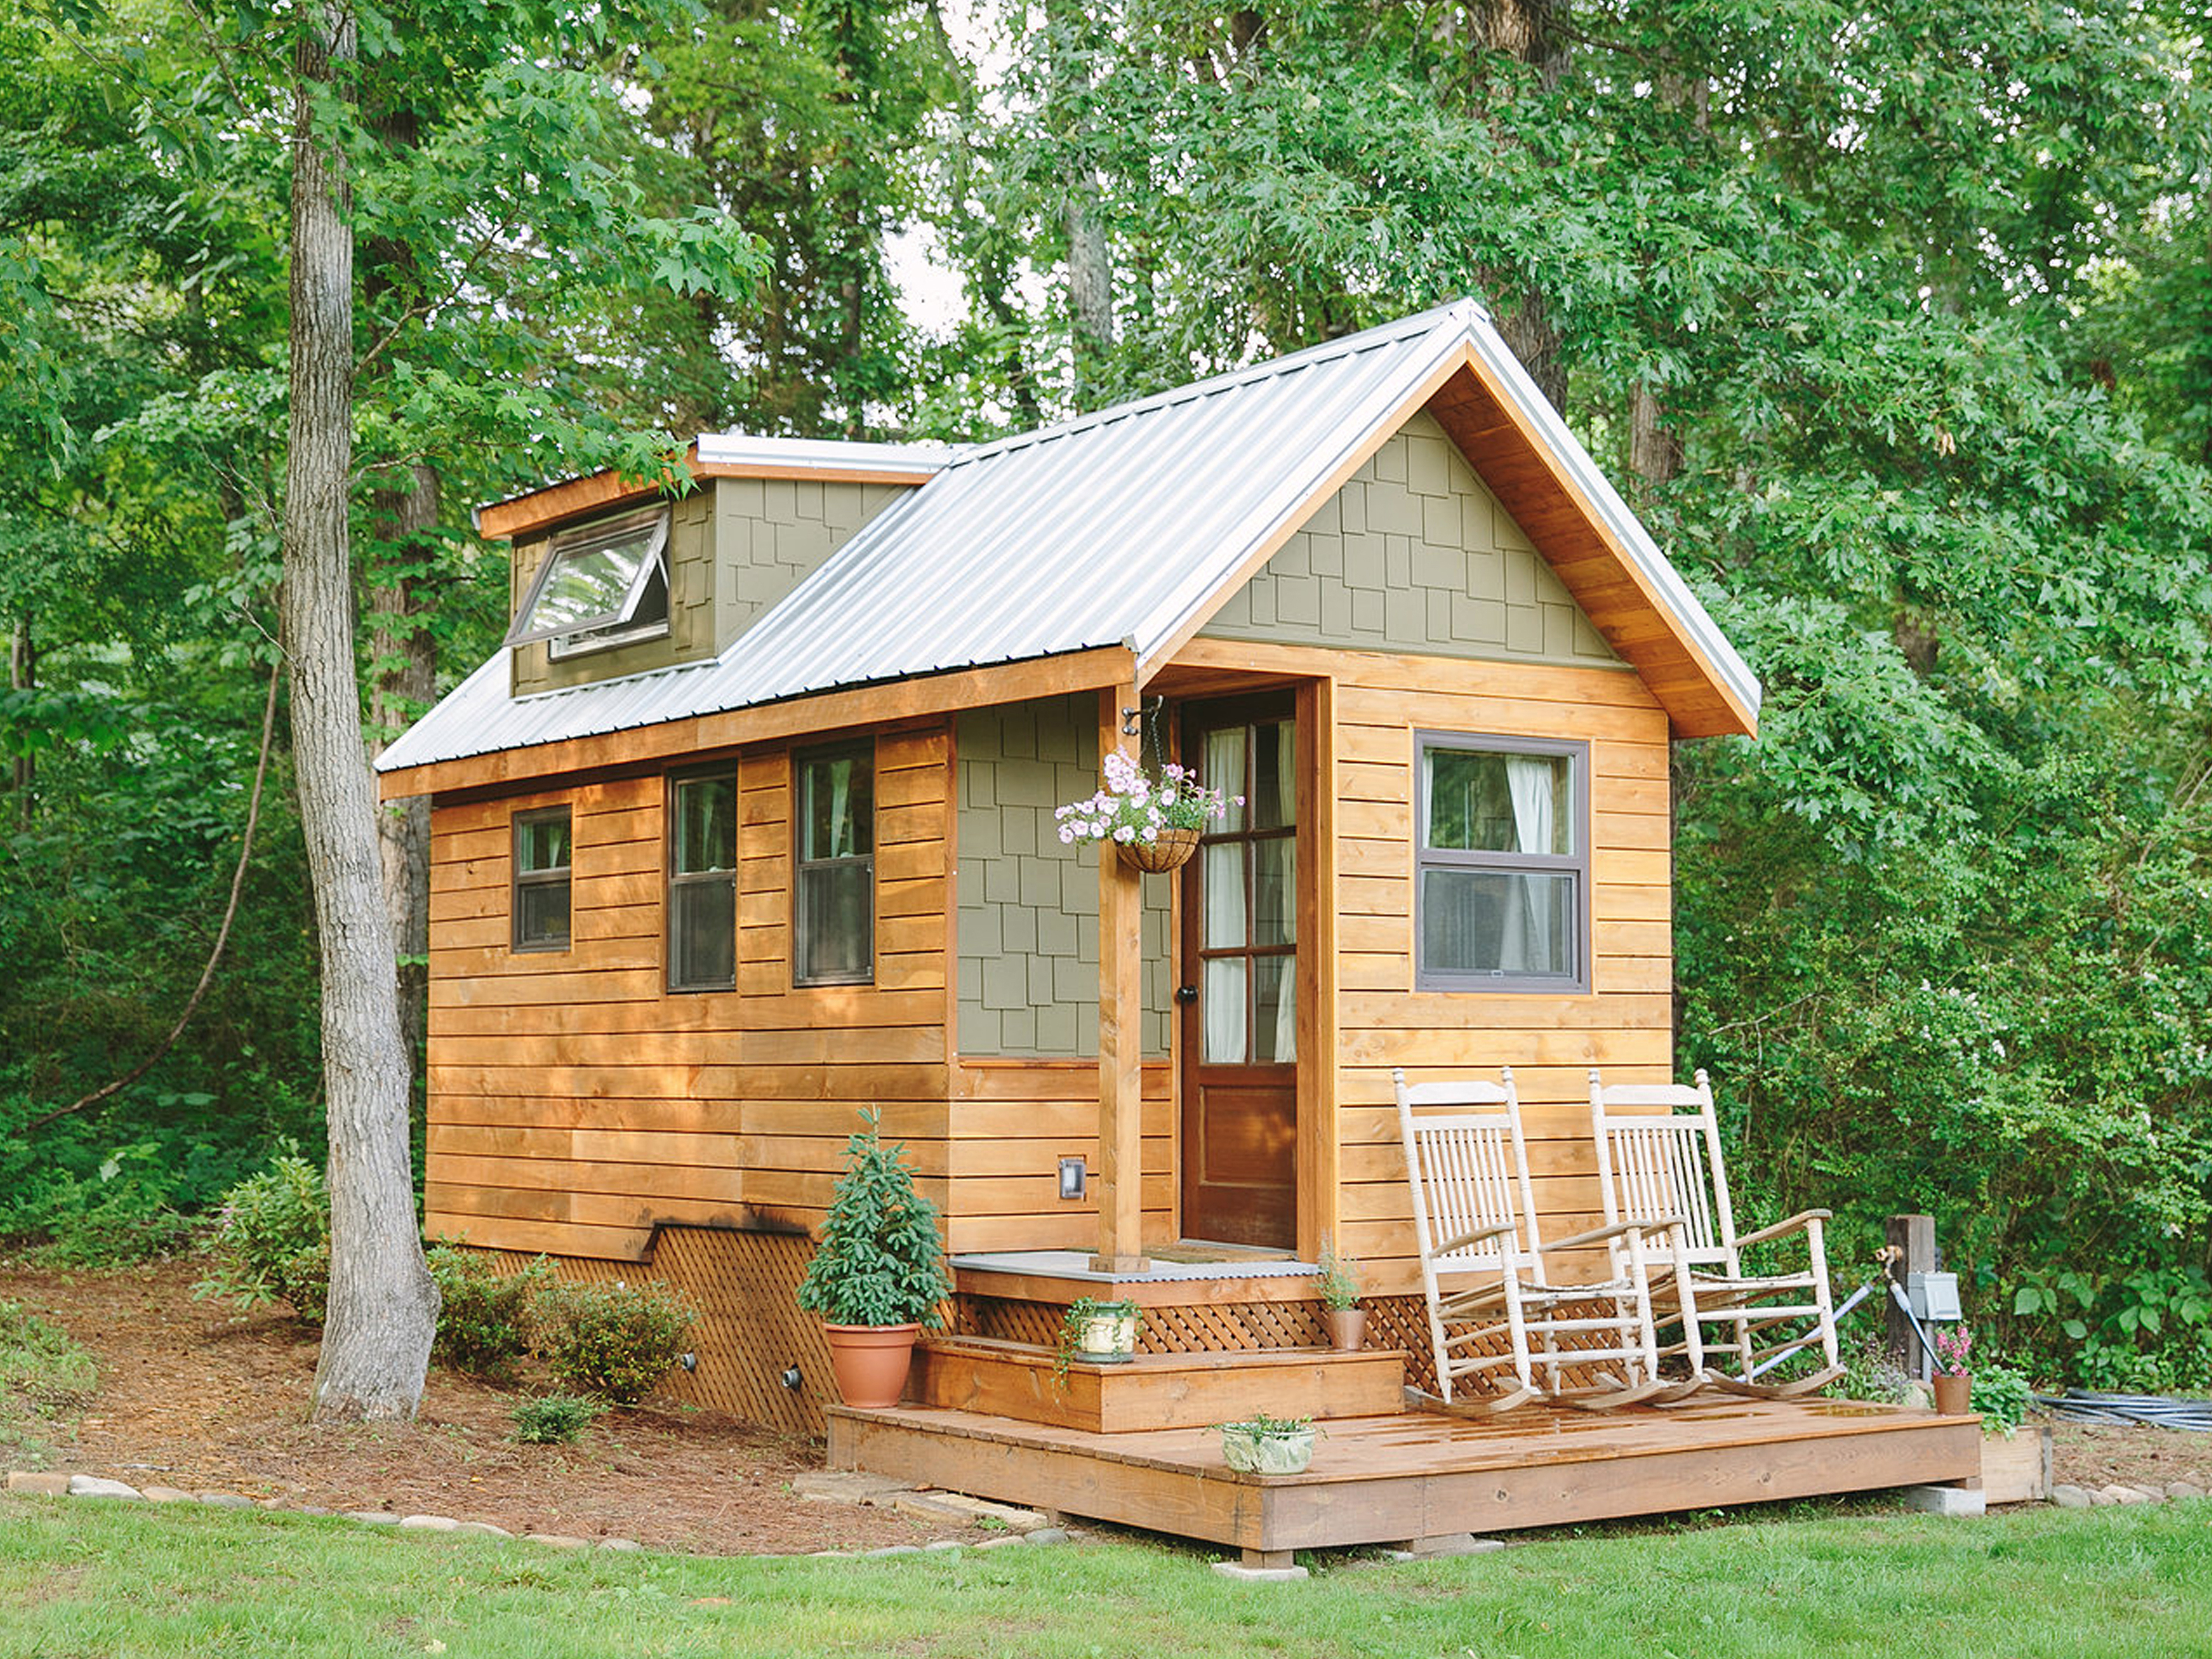 Contemporary small house design 65 best tiny houses 2017 - small house pictures u0026 plans qetonrn